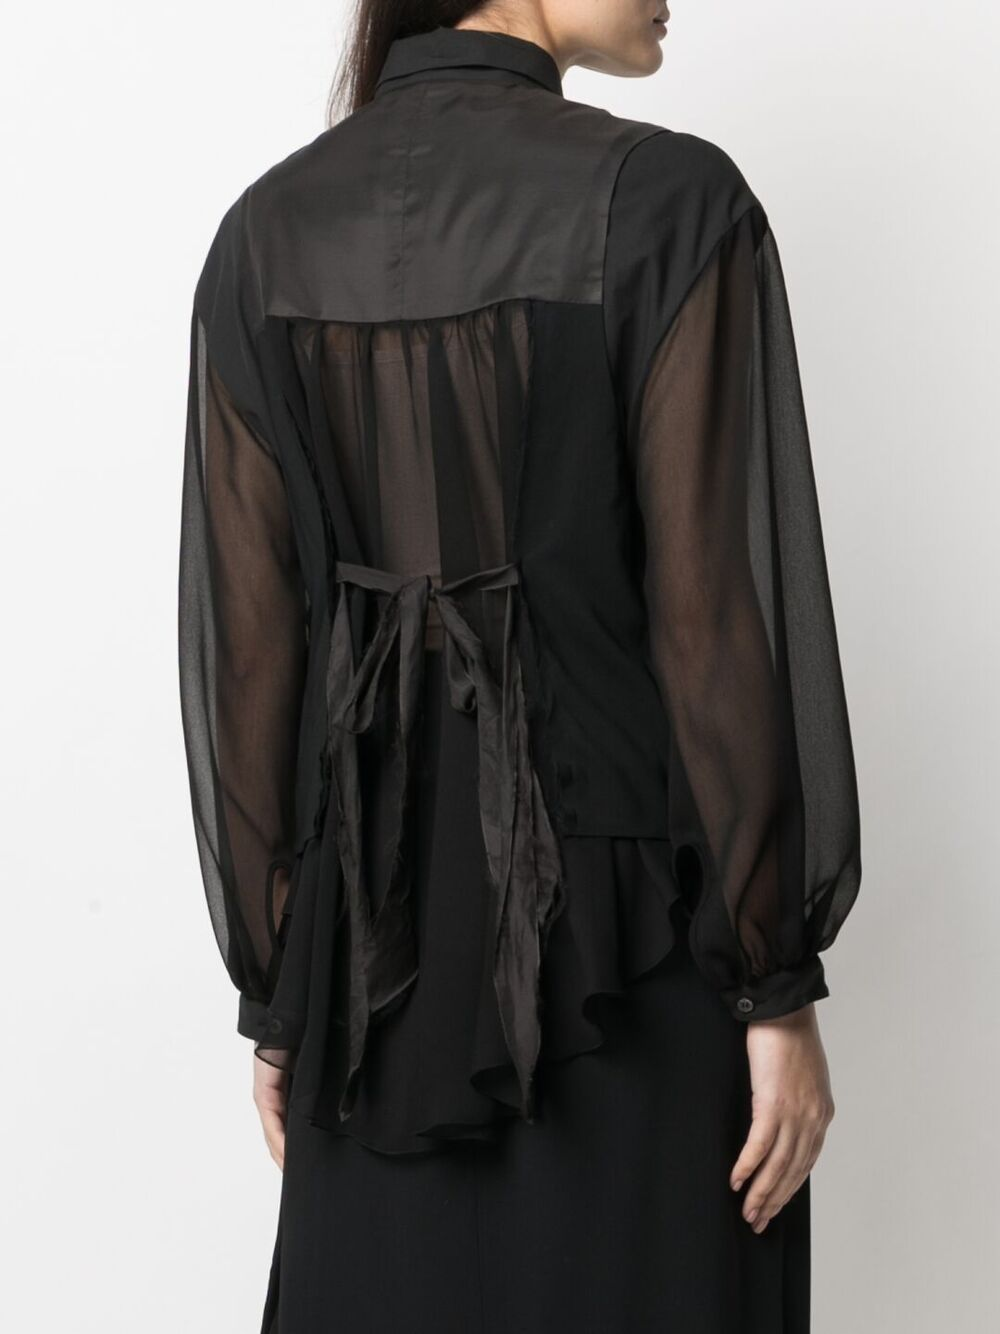 UNDERCOVER WOMEN SHEER SHIRT WITH VEST